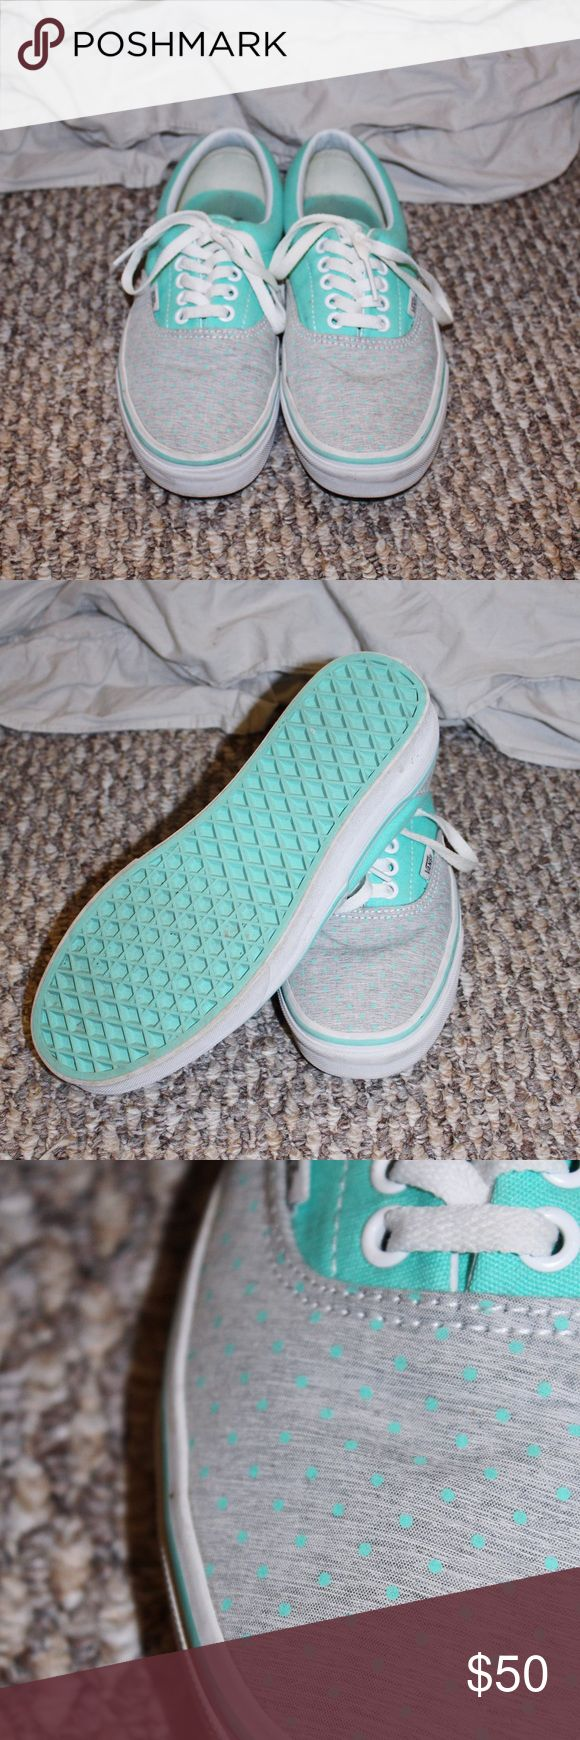 💙 Turquoise and gray Vans 💙 Super cute turquoise and gray Vans looking for a good home! | Womens size 8 | Only worn a couple times | No damage | 🎉 Feel free to make an offer 🎉 ‼️ Consider bundling 2+ items from my closet to get a discount ‼️ Vans Shoes Sneakers